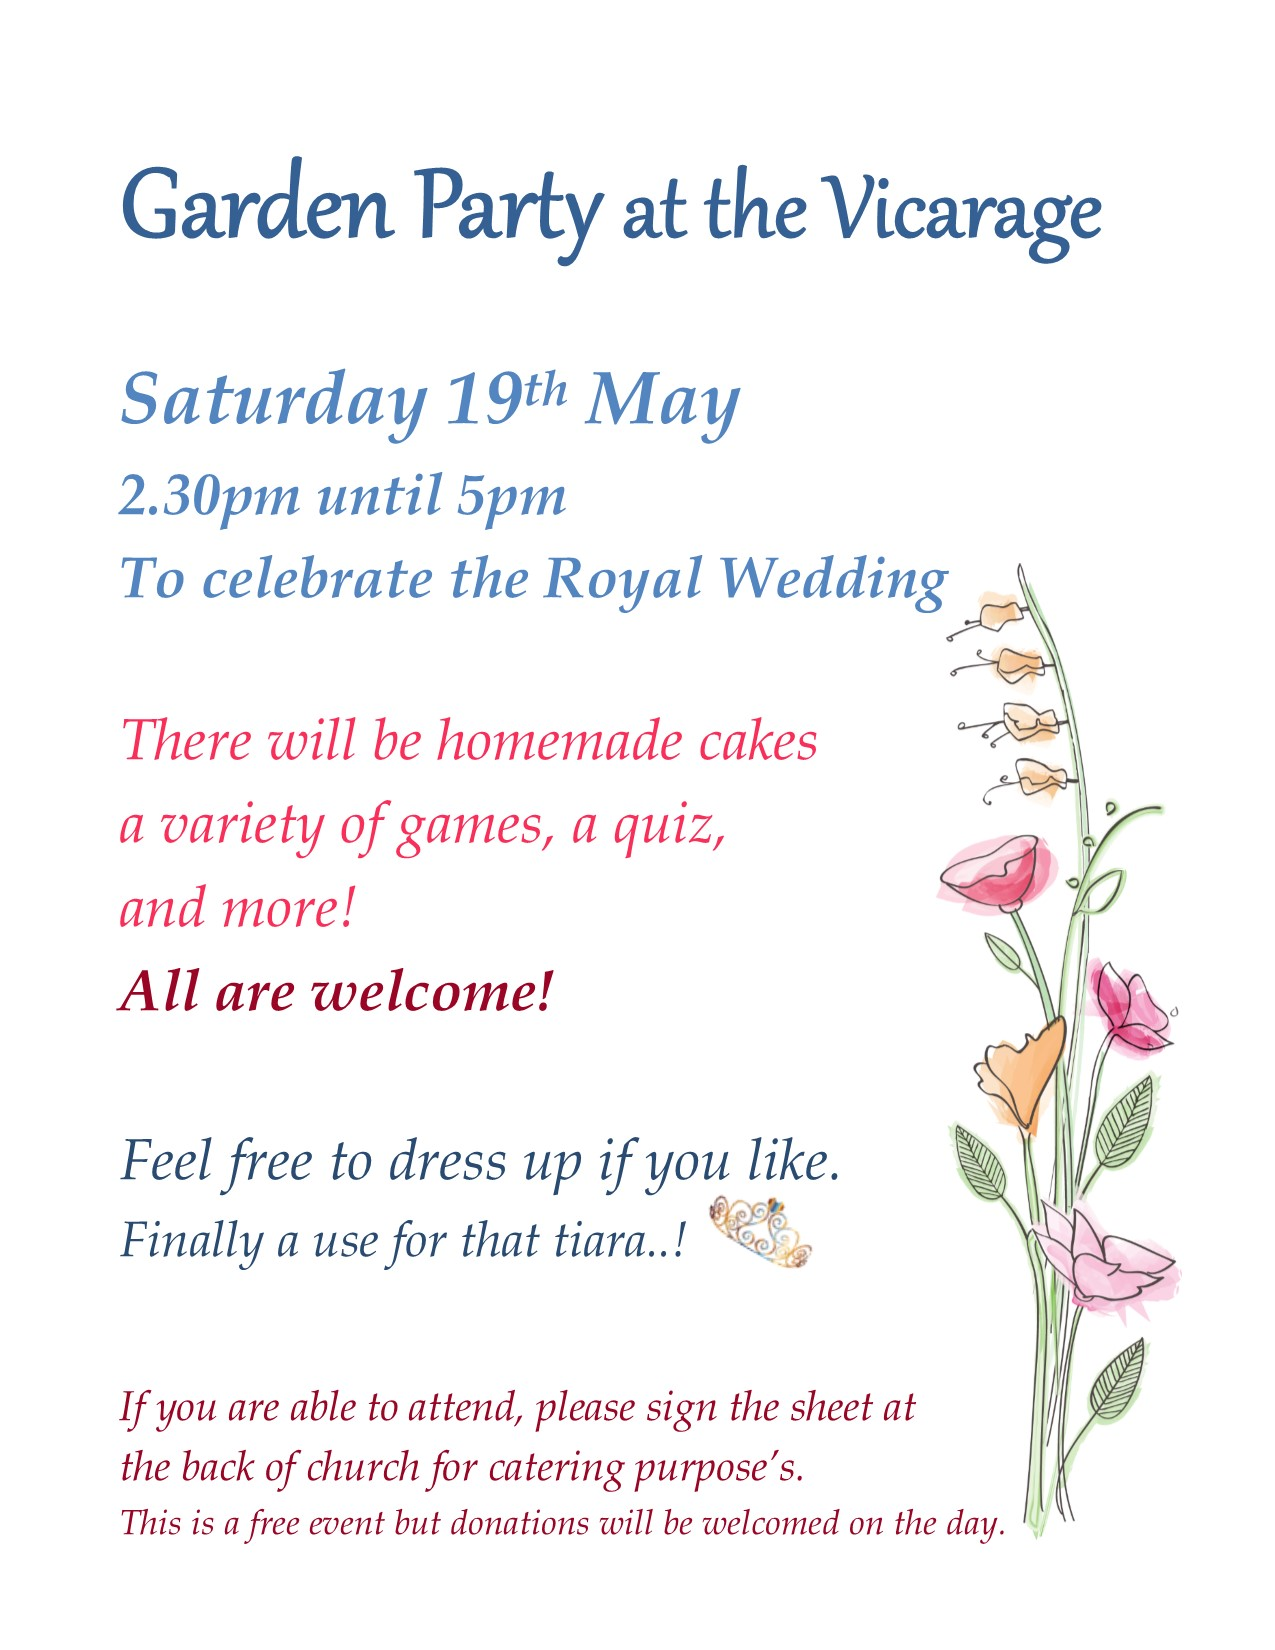 Garden party may